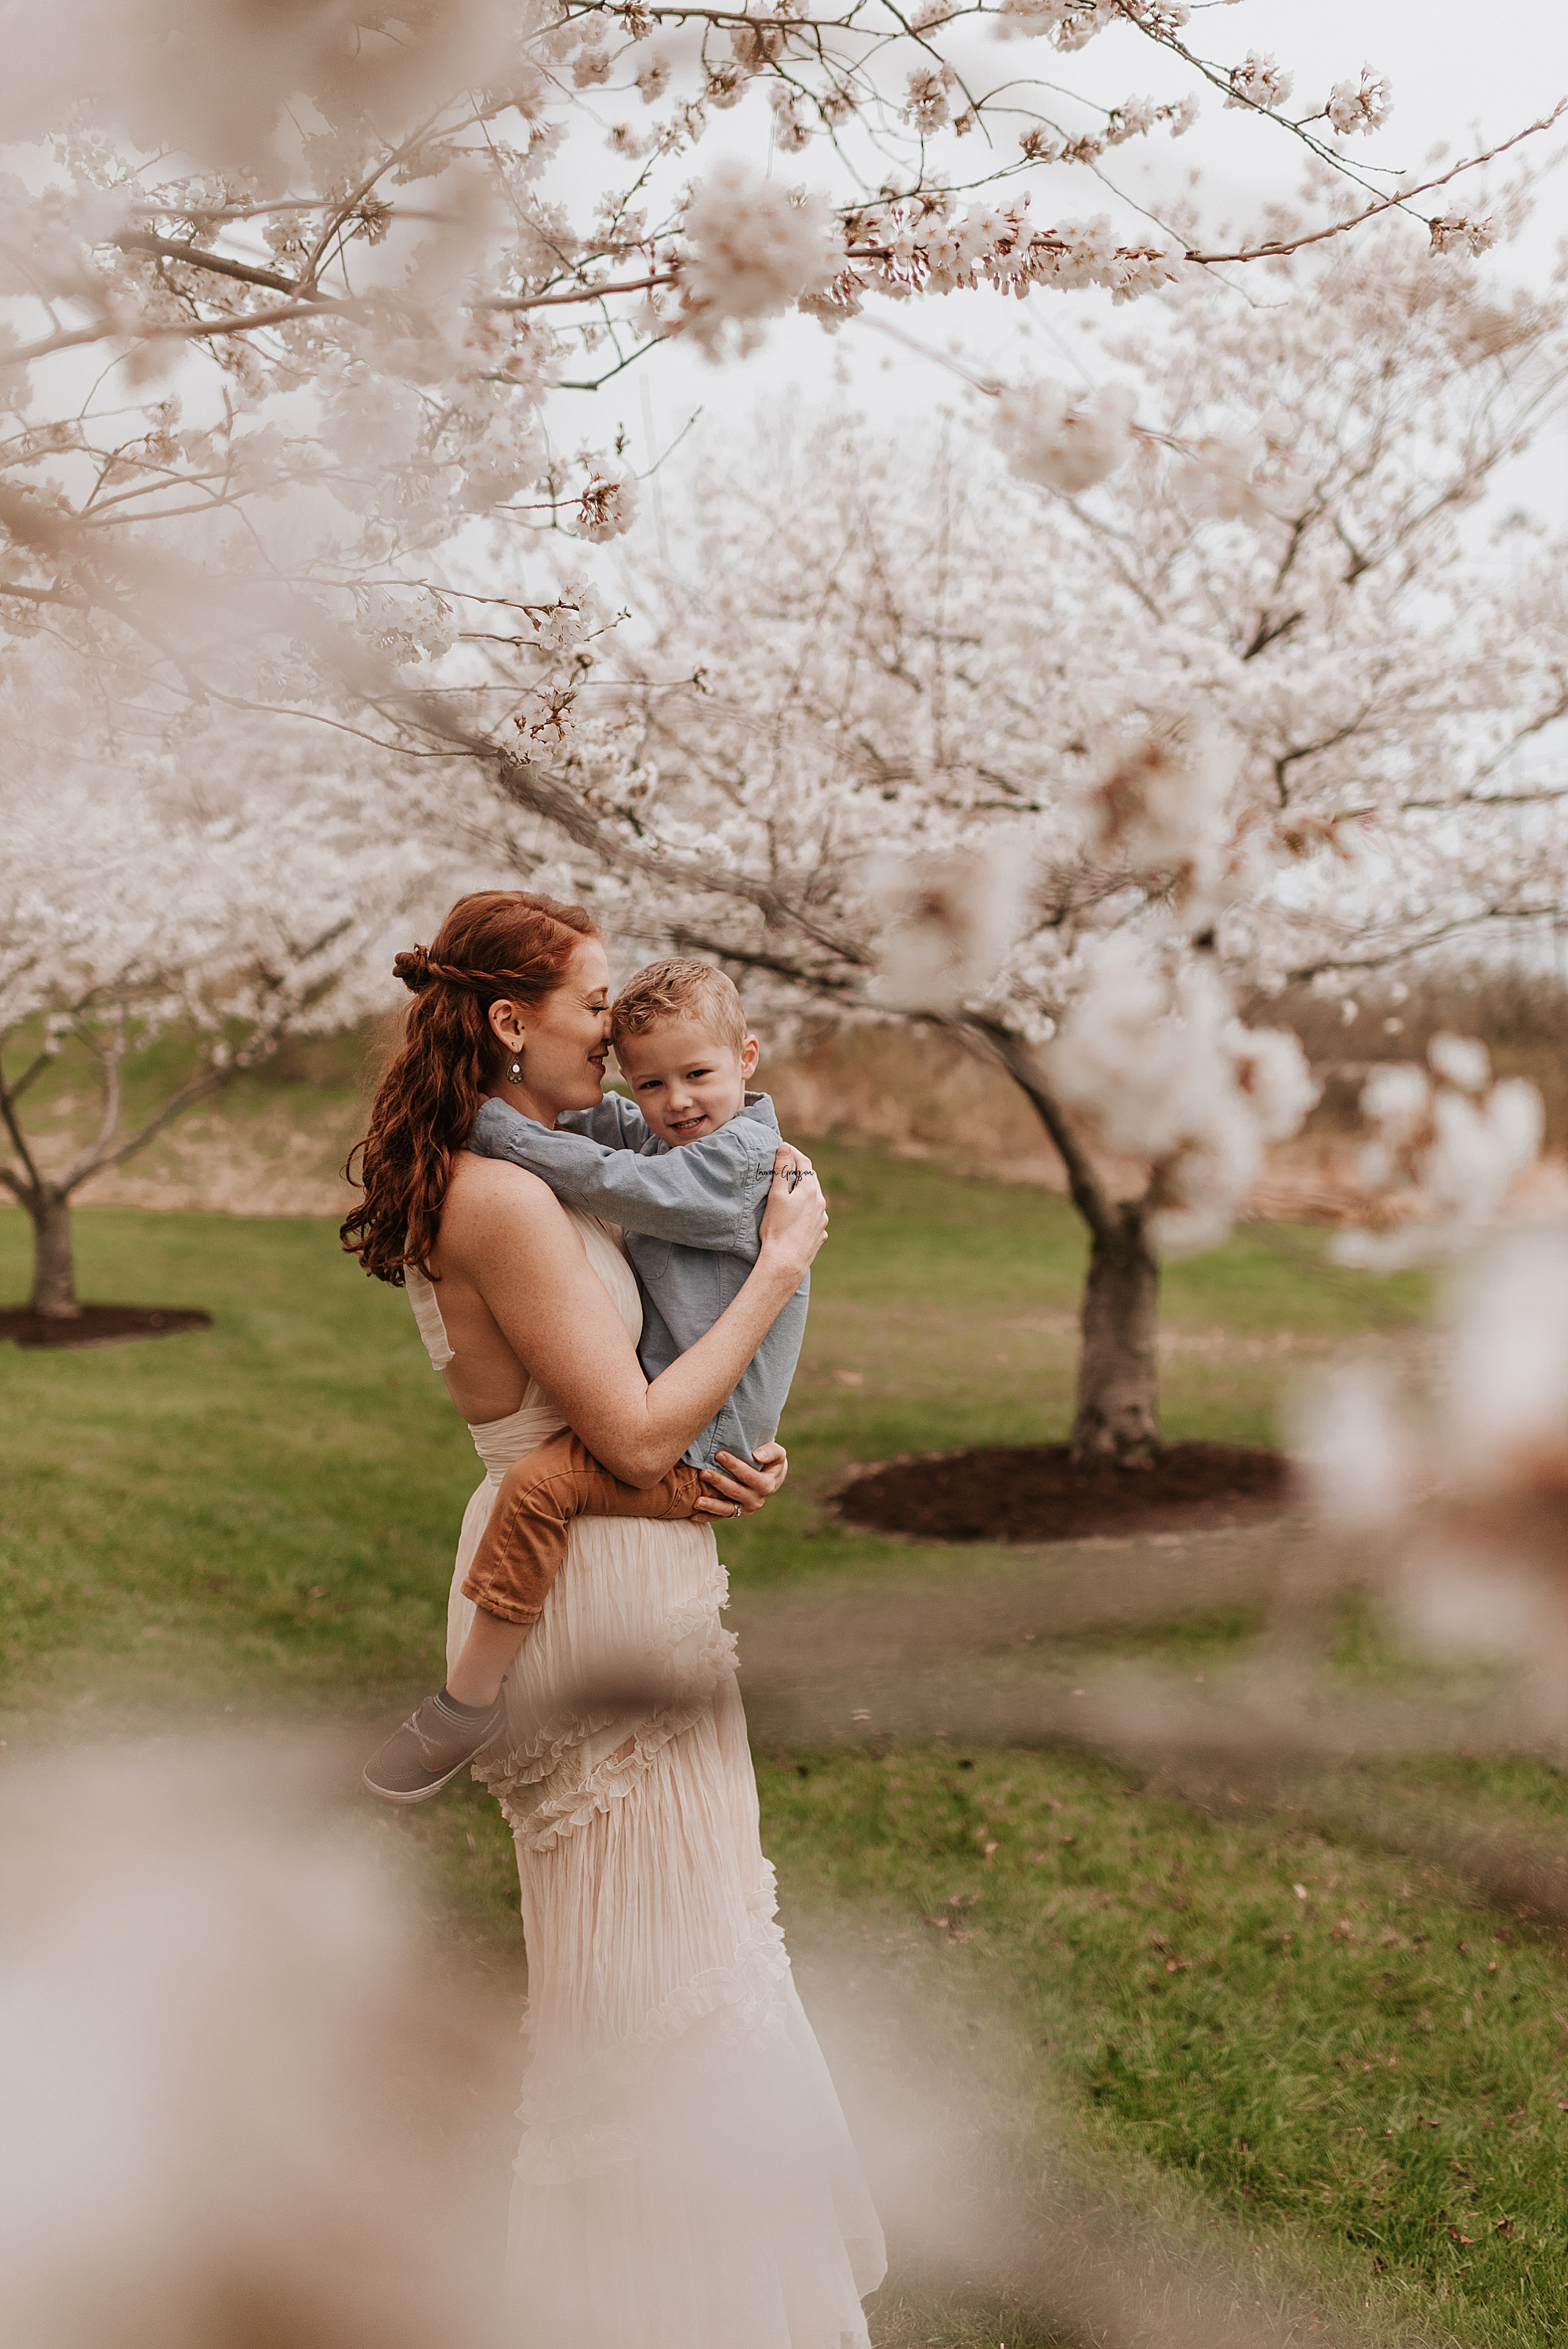 lauren-grayson-photography-cleveland-ohio-motherhood-family-child-photo-session-cherry-blossoms_0001.jpg